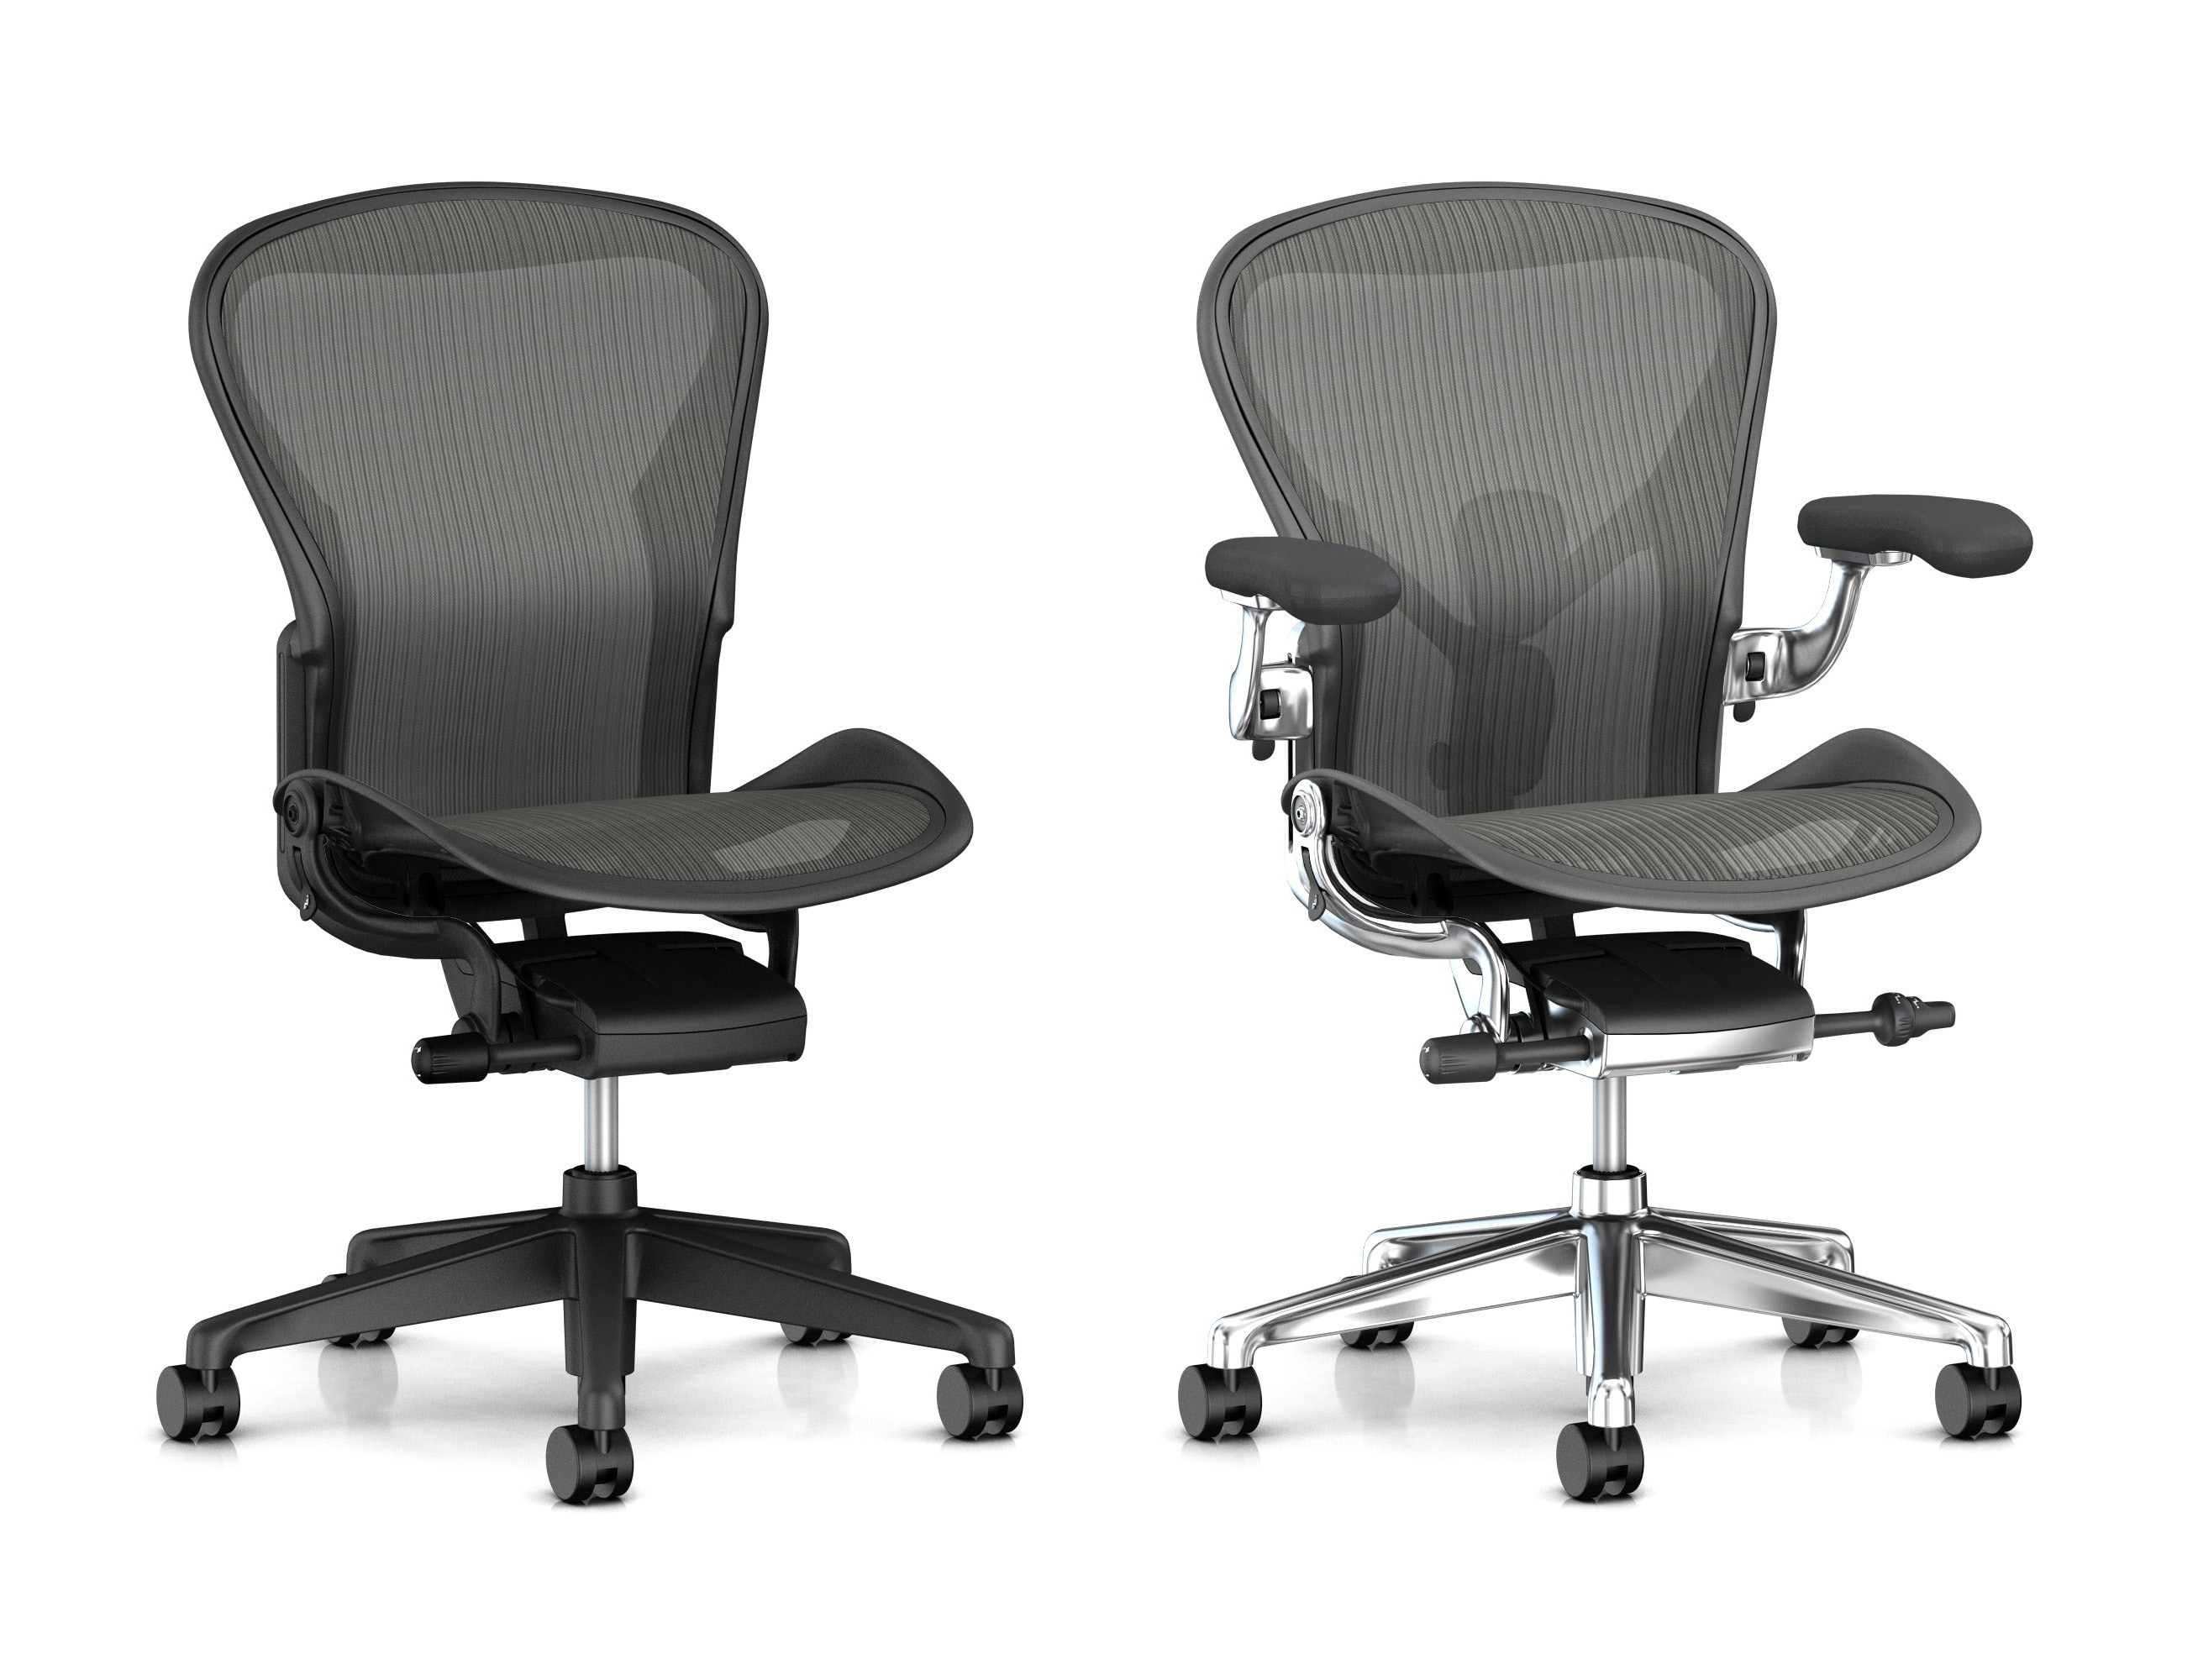 ideas black miller herman in aeron size featured b comfortable vibrant ingenious refurbished chair fully astonishing